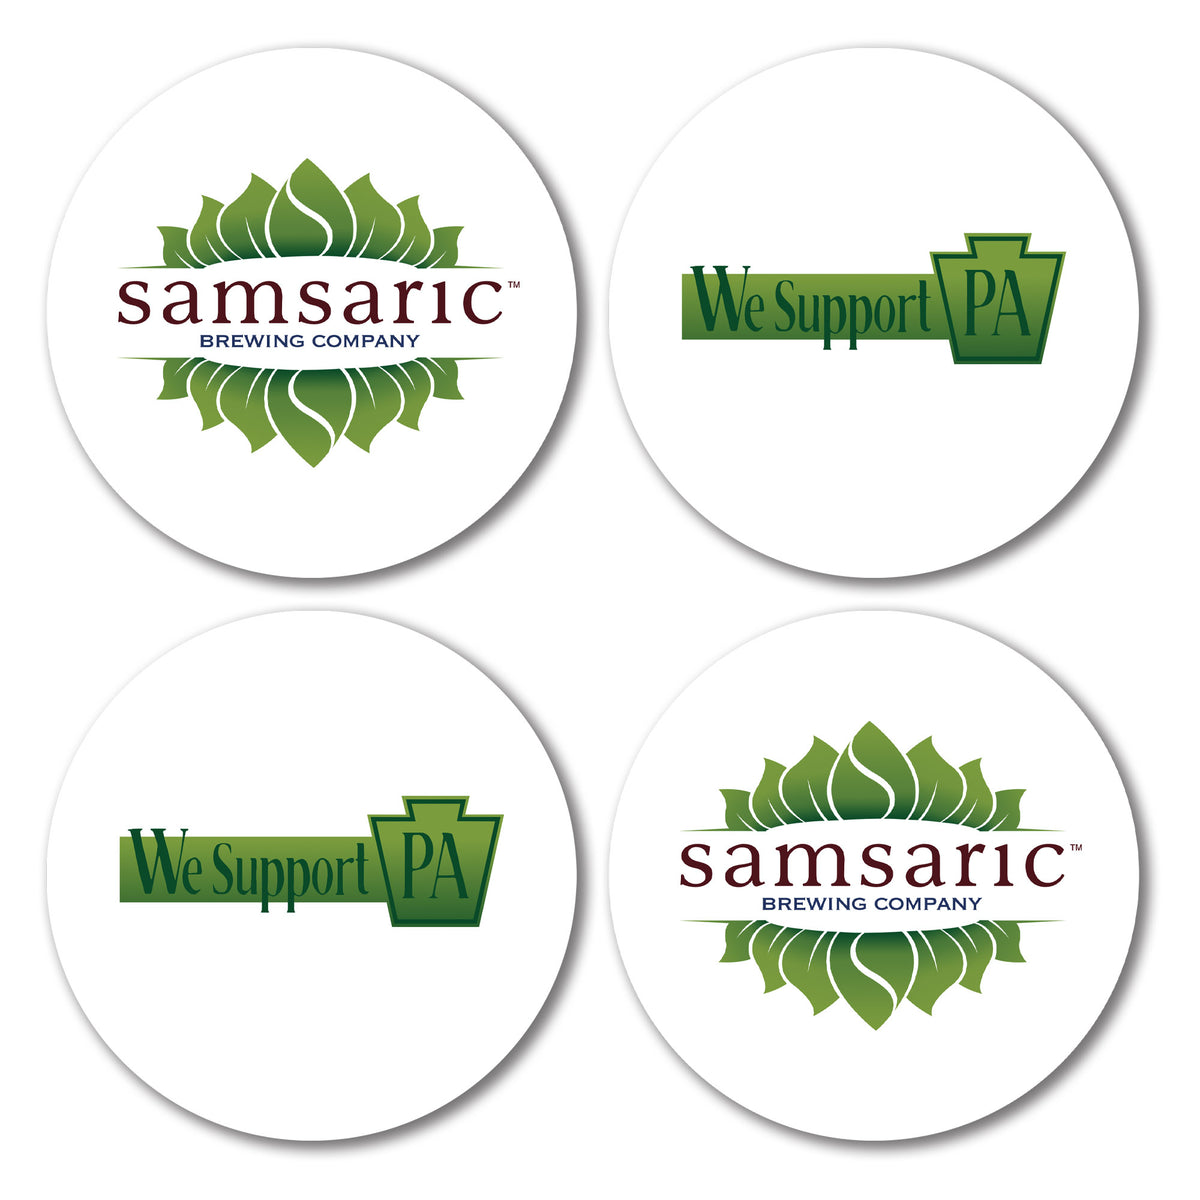 Samsaric Brewing Company We Support PA Coasters